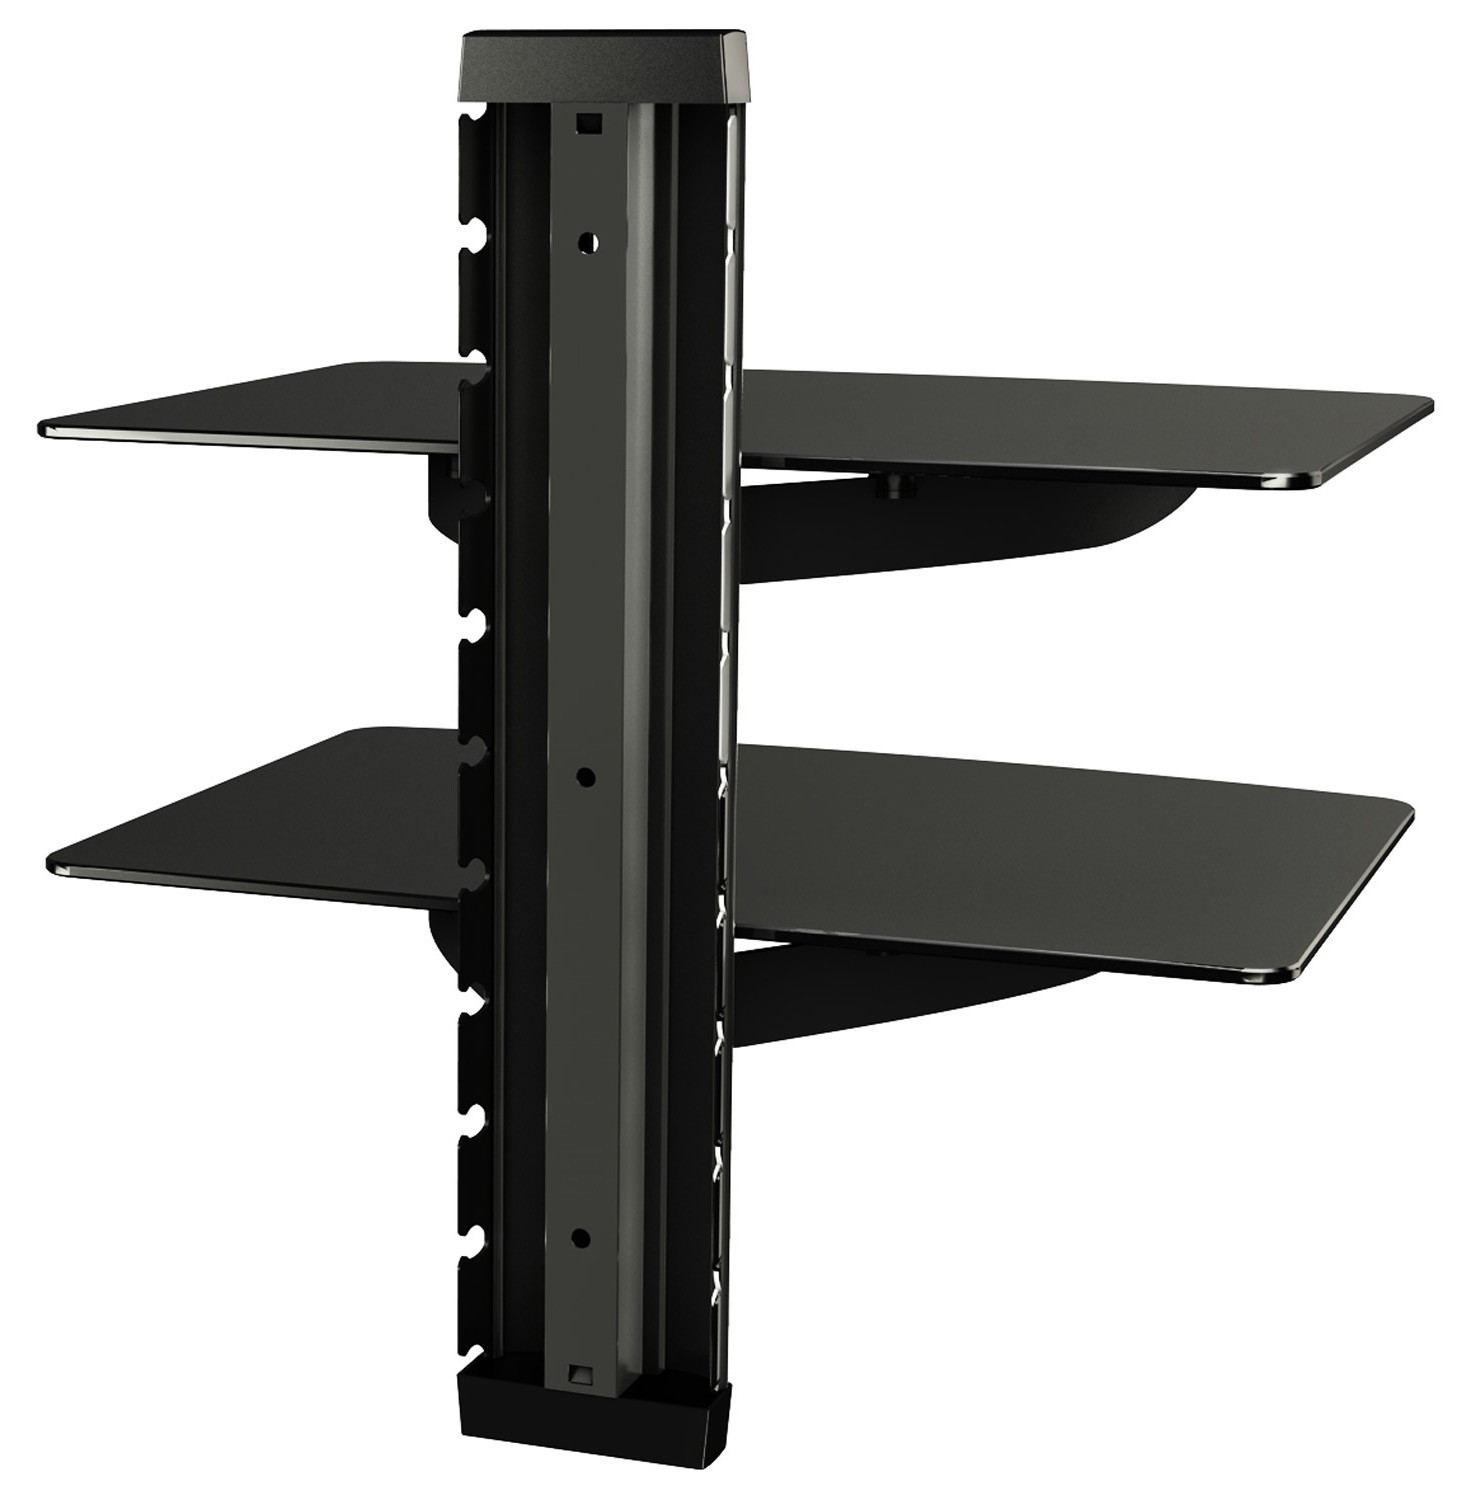 Glasregal Für Küche Glasregal Hifi Wandregal Wandboard Hi Fi Regal Dvd Wand 11179